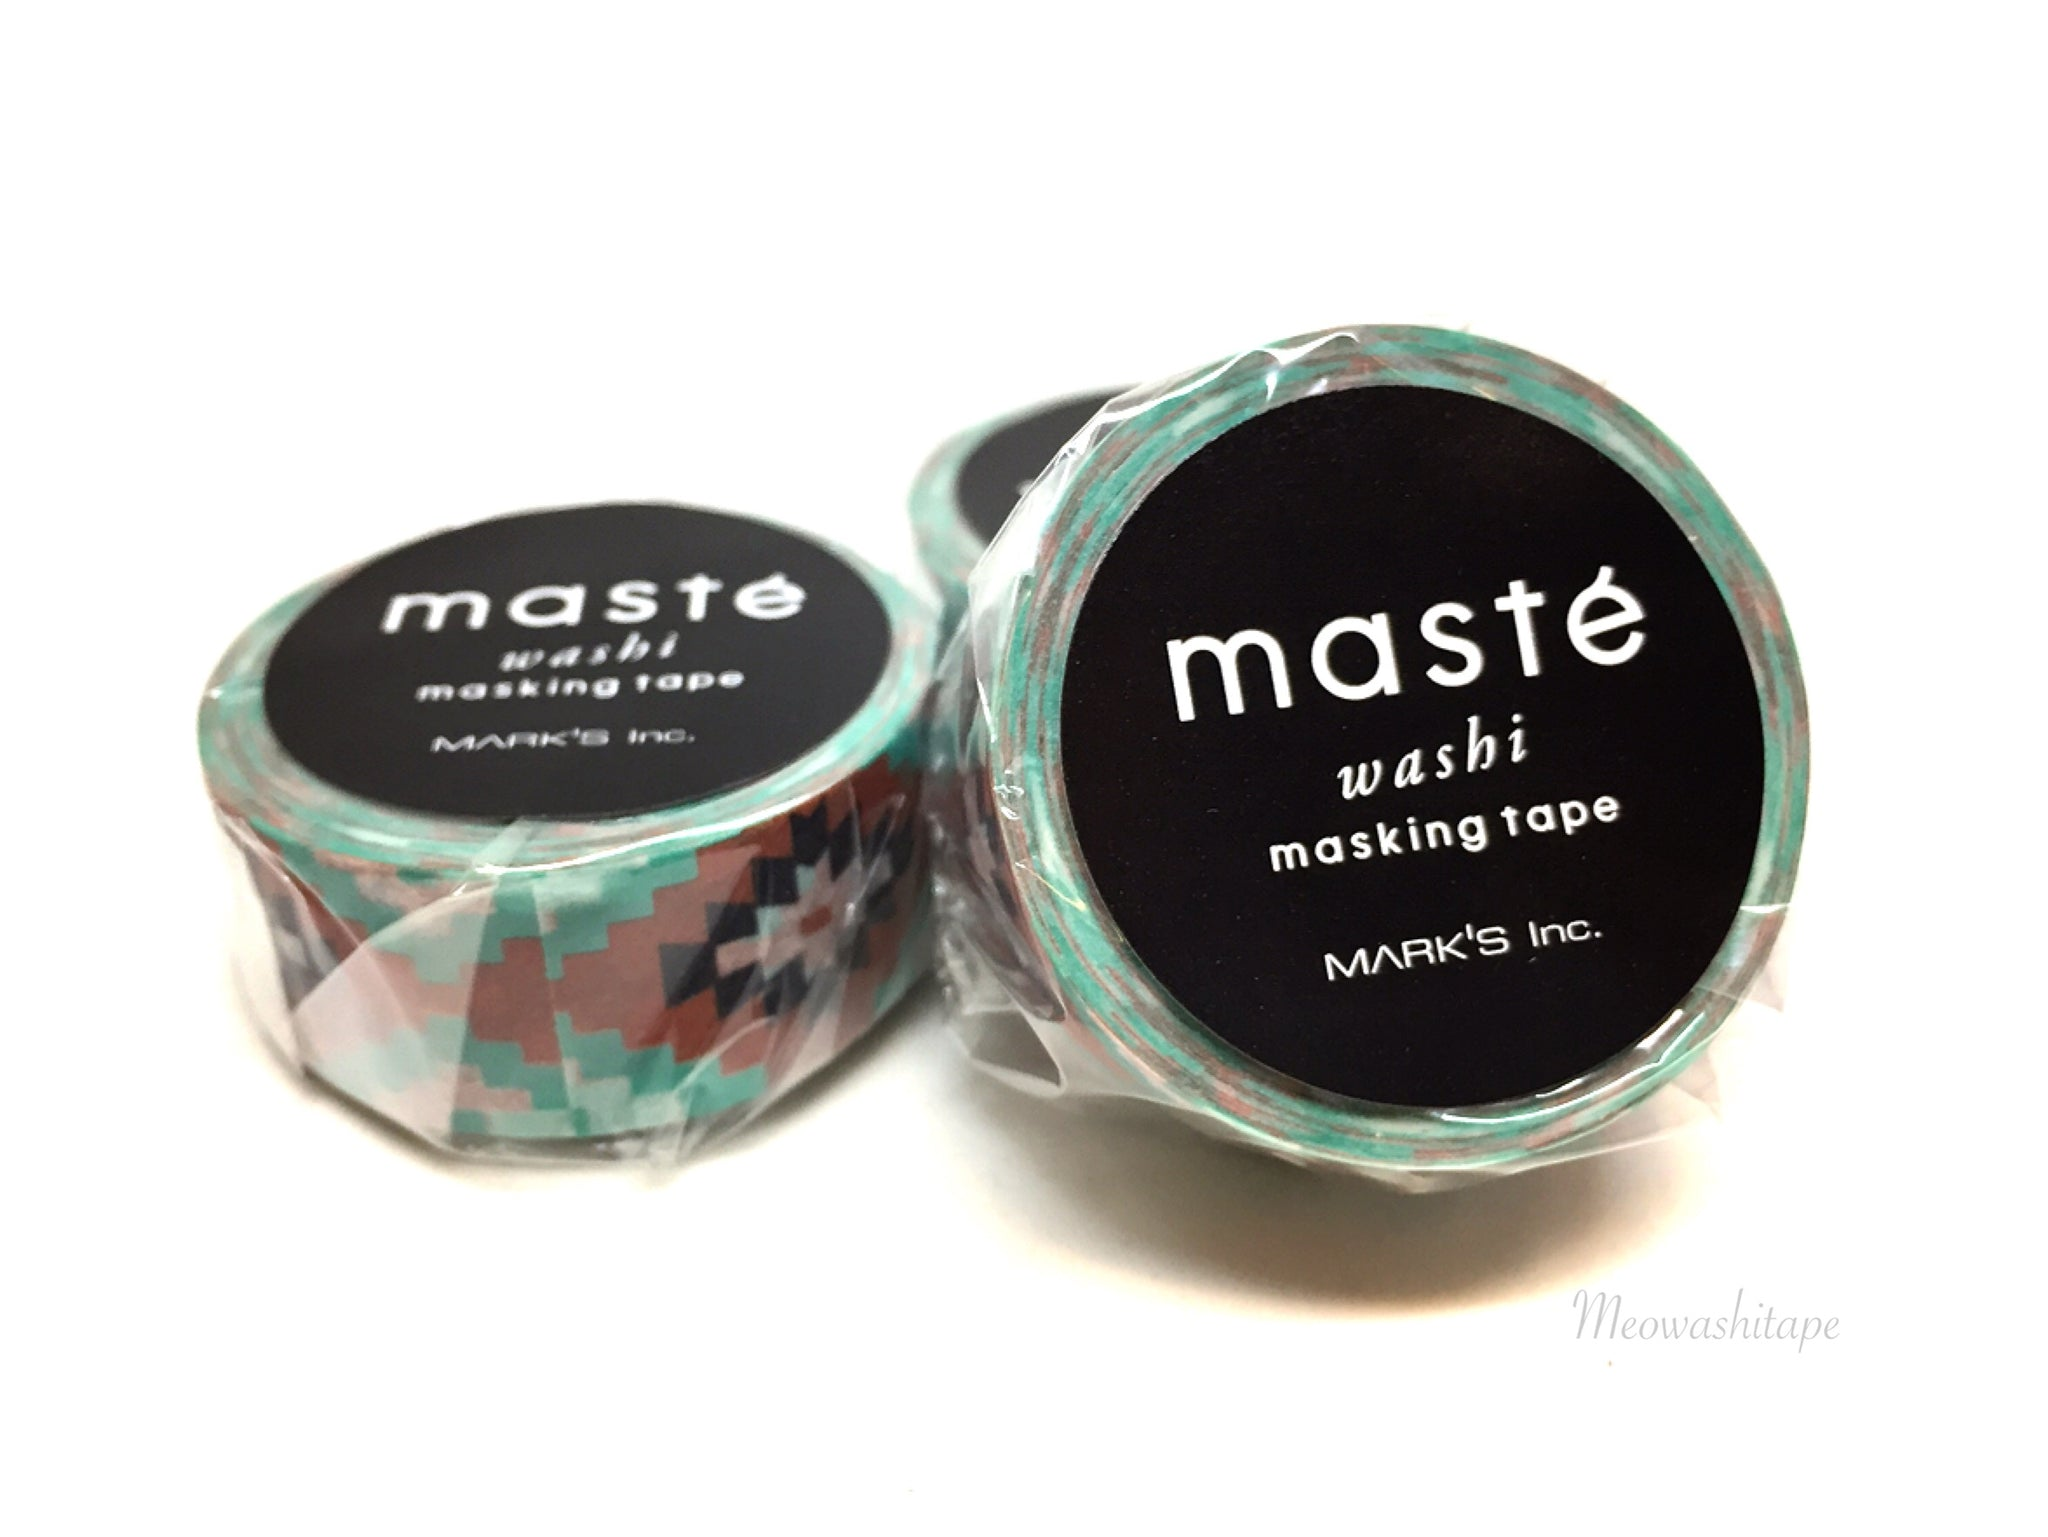 Mark's maste MULTI - Ortega bohemian washi tape